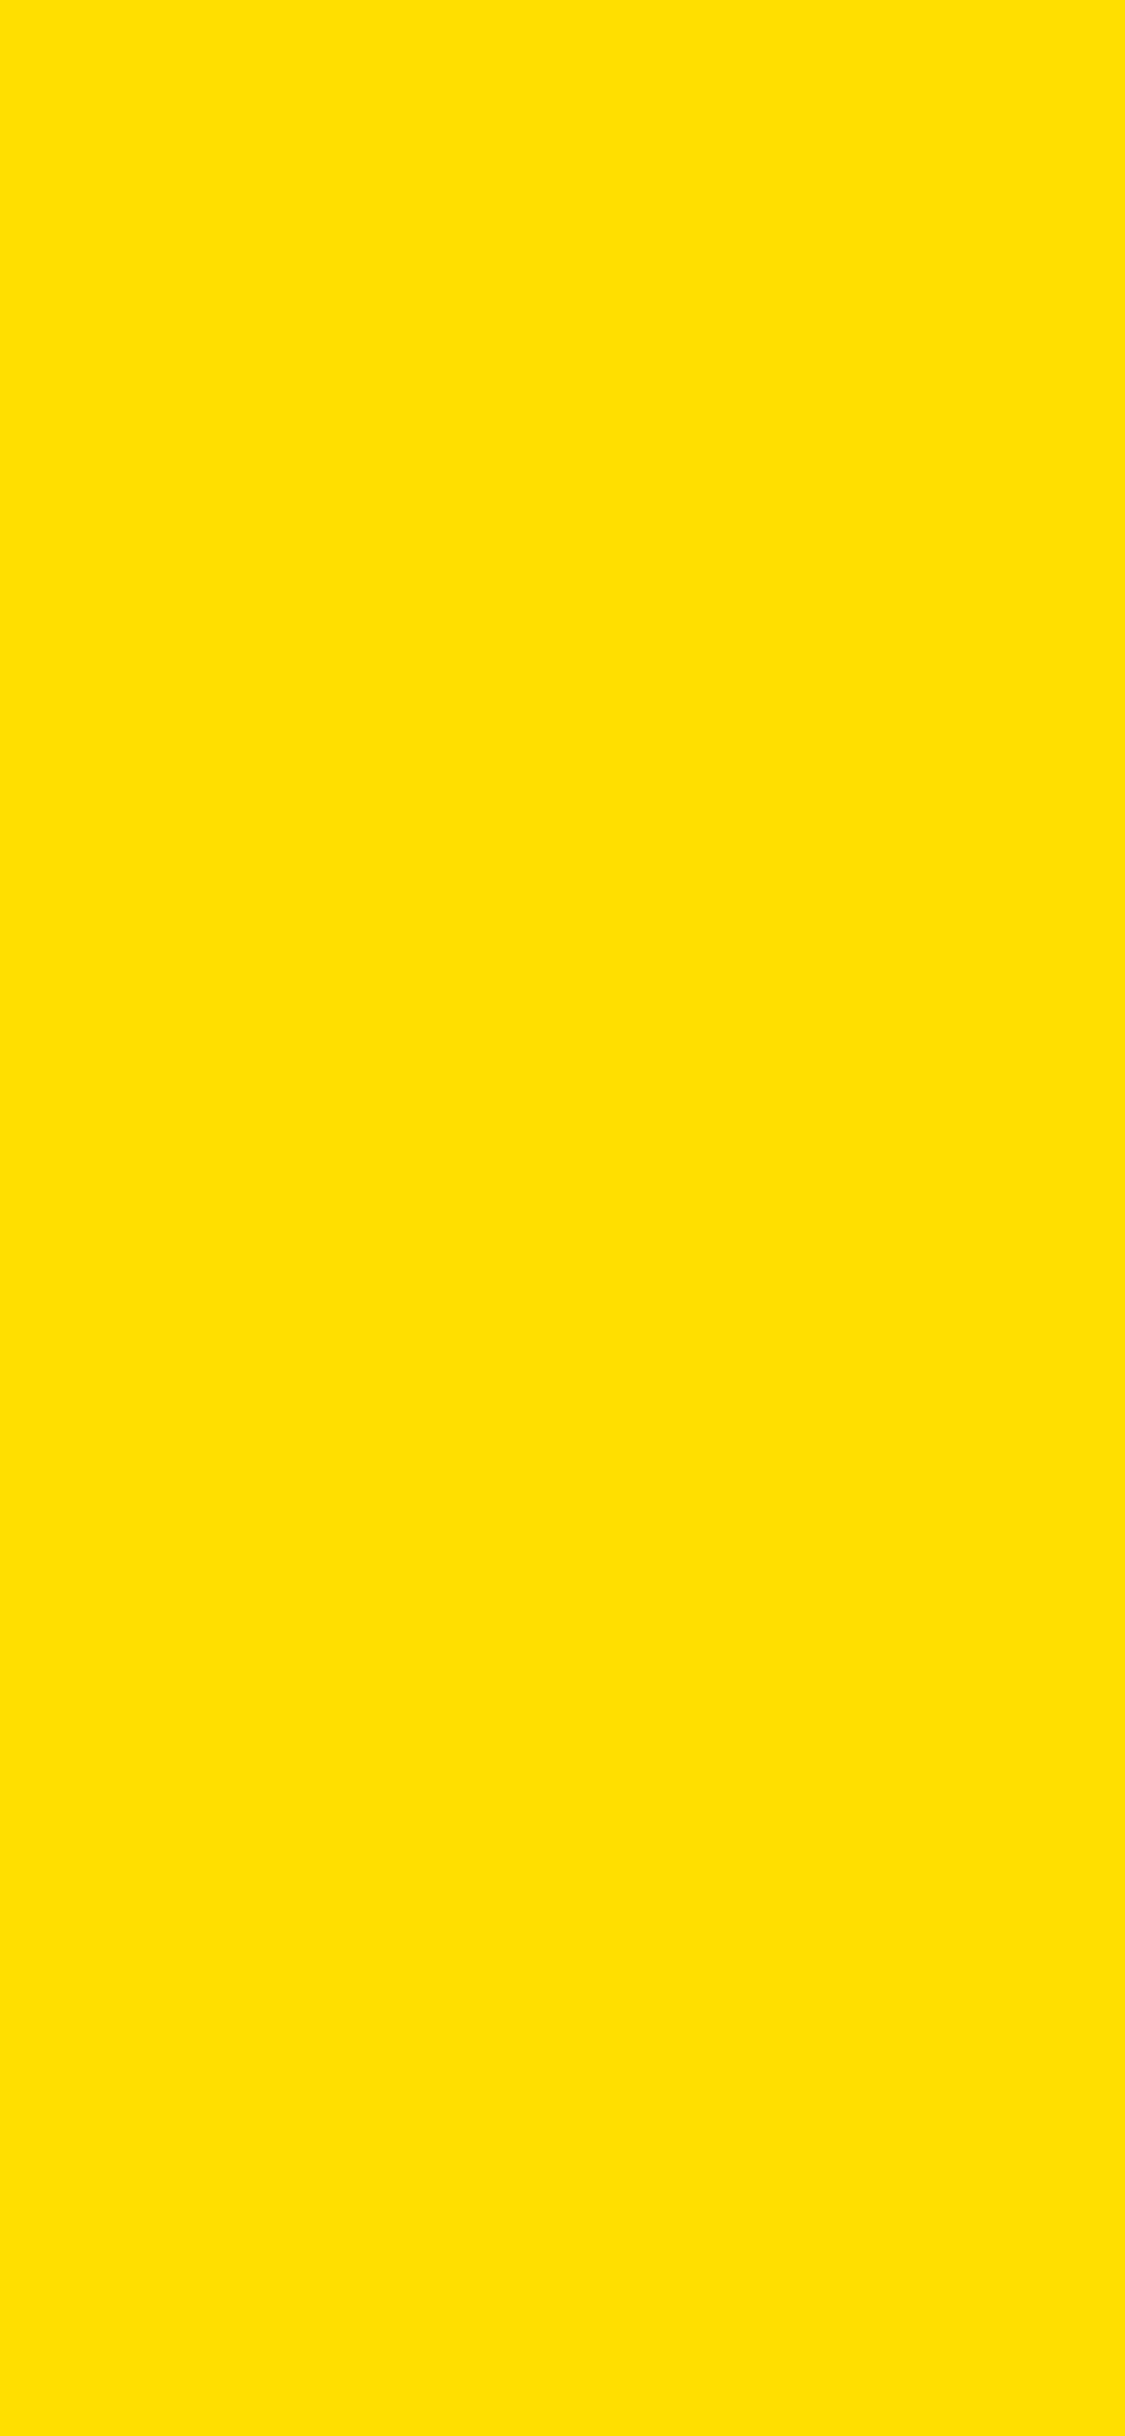 1125x2436 Golden Yellow Solid Color Background